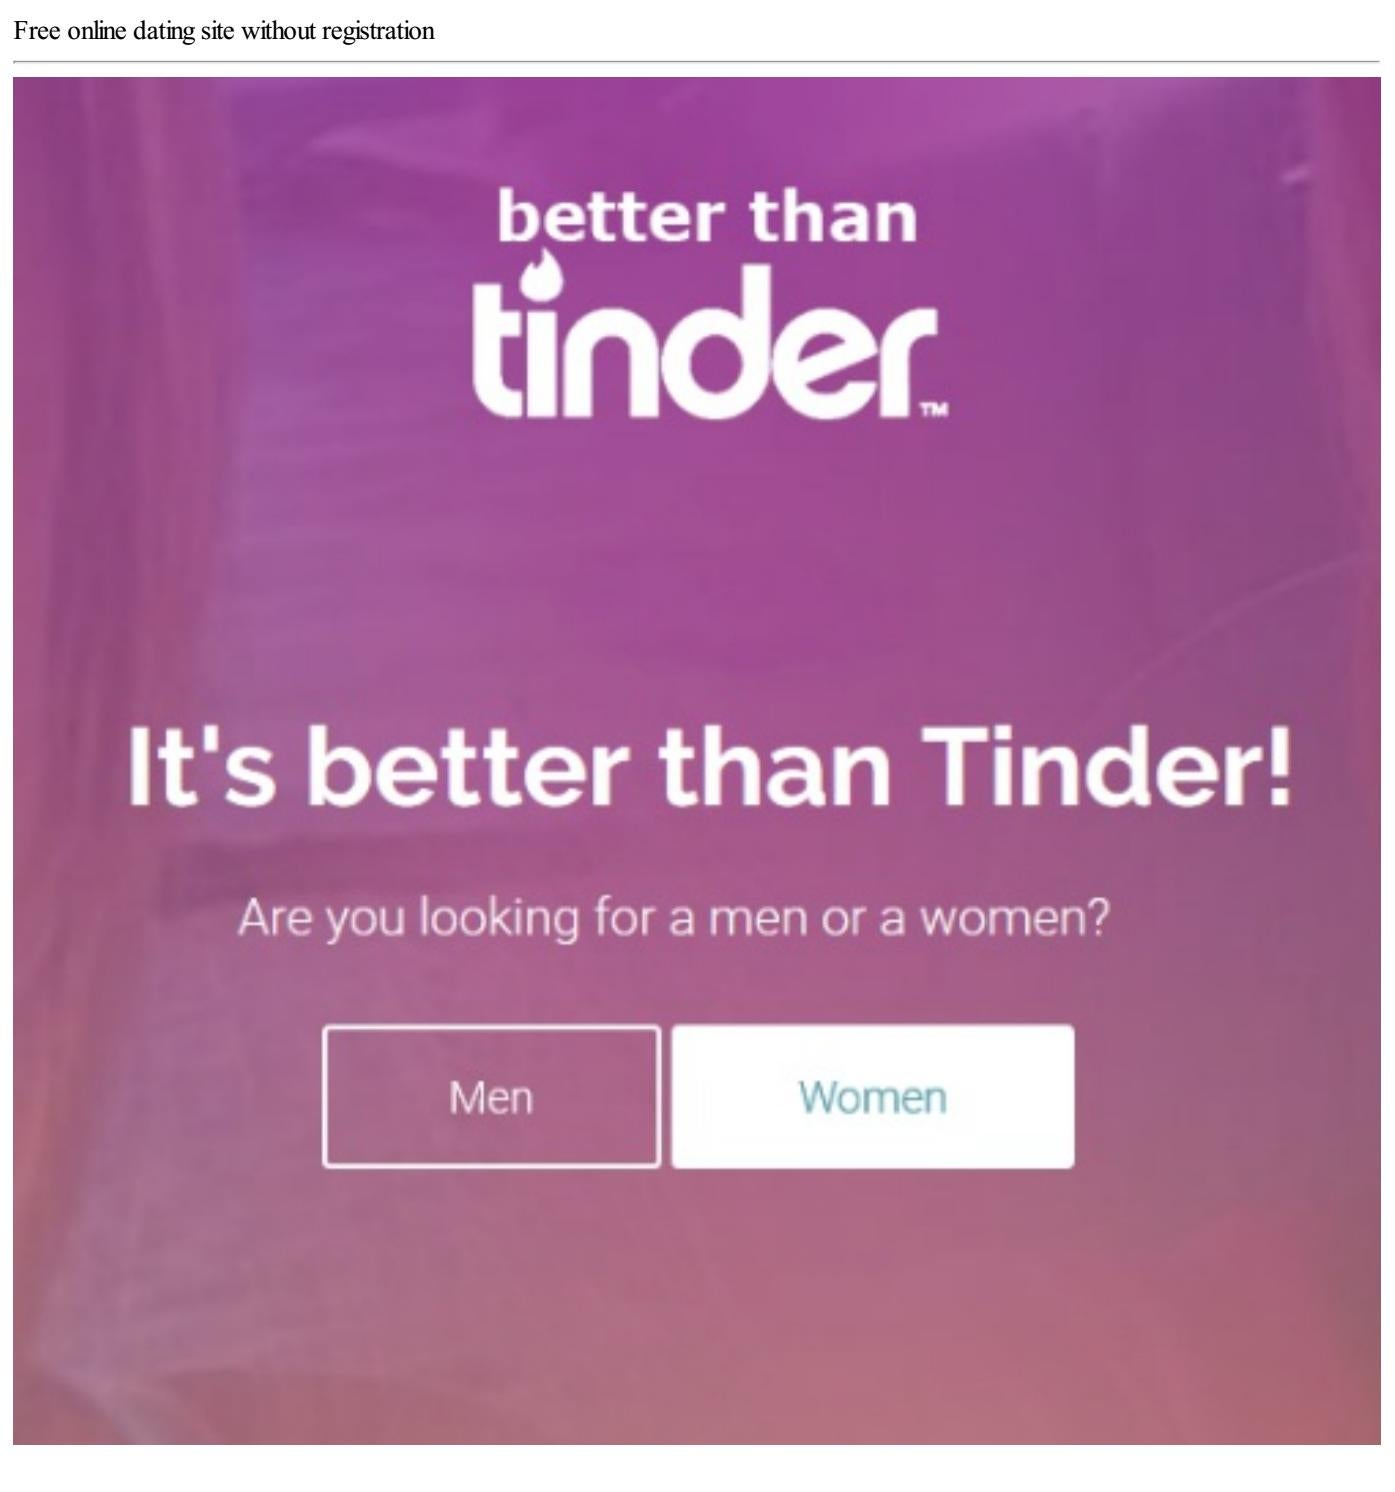 free online dating sites without any registration